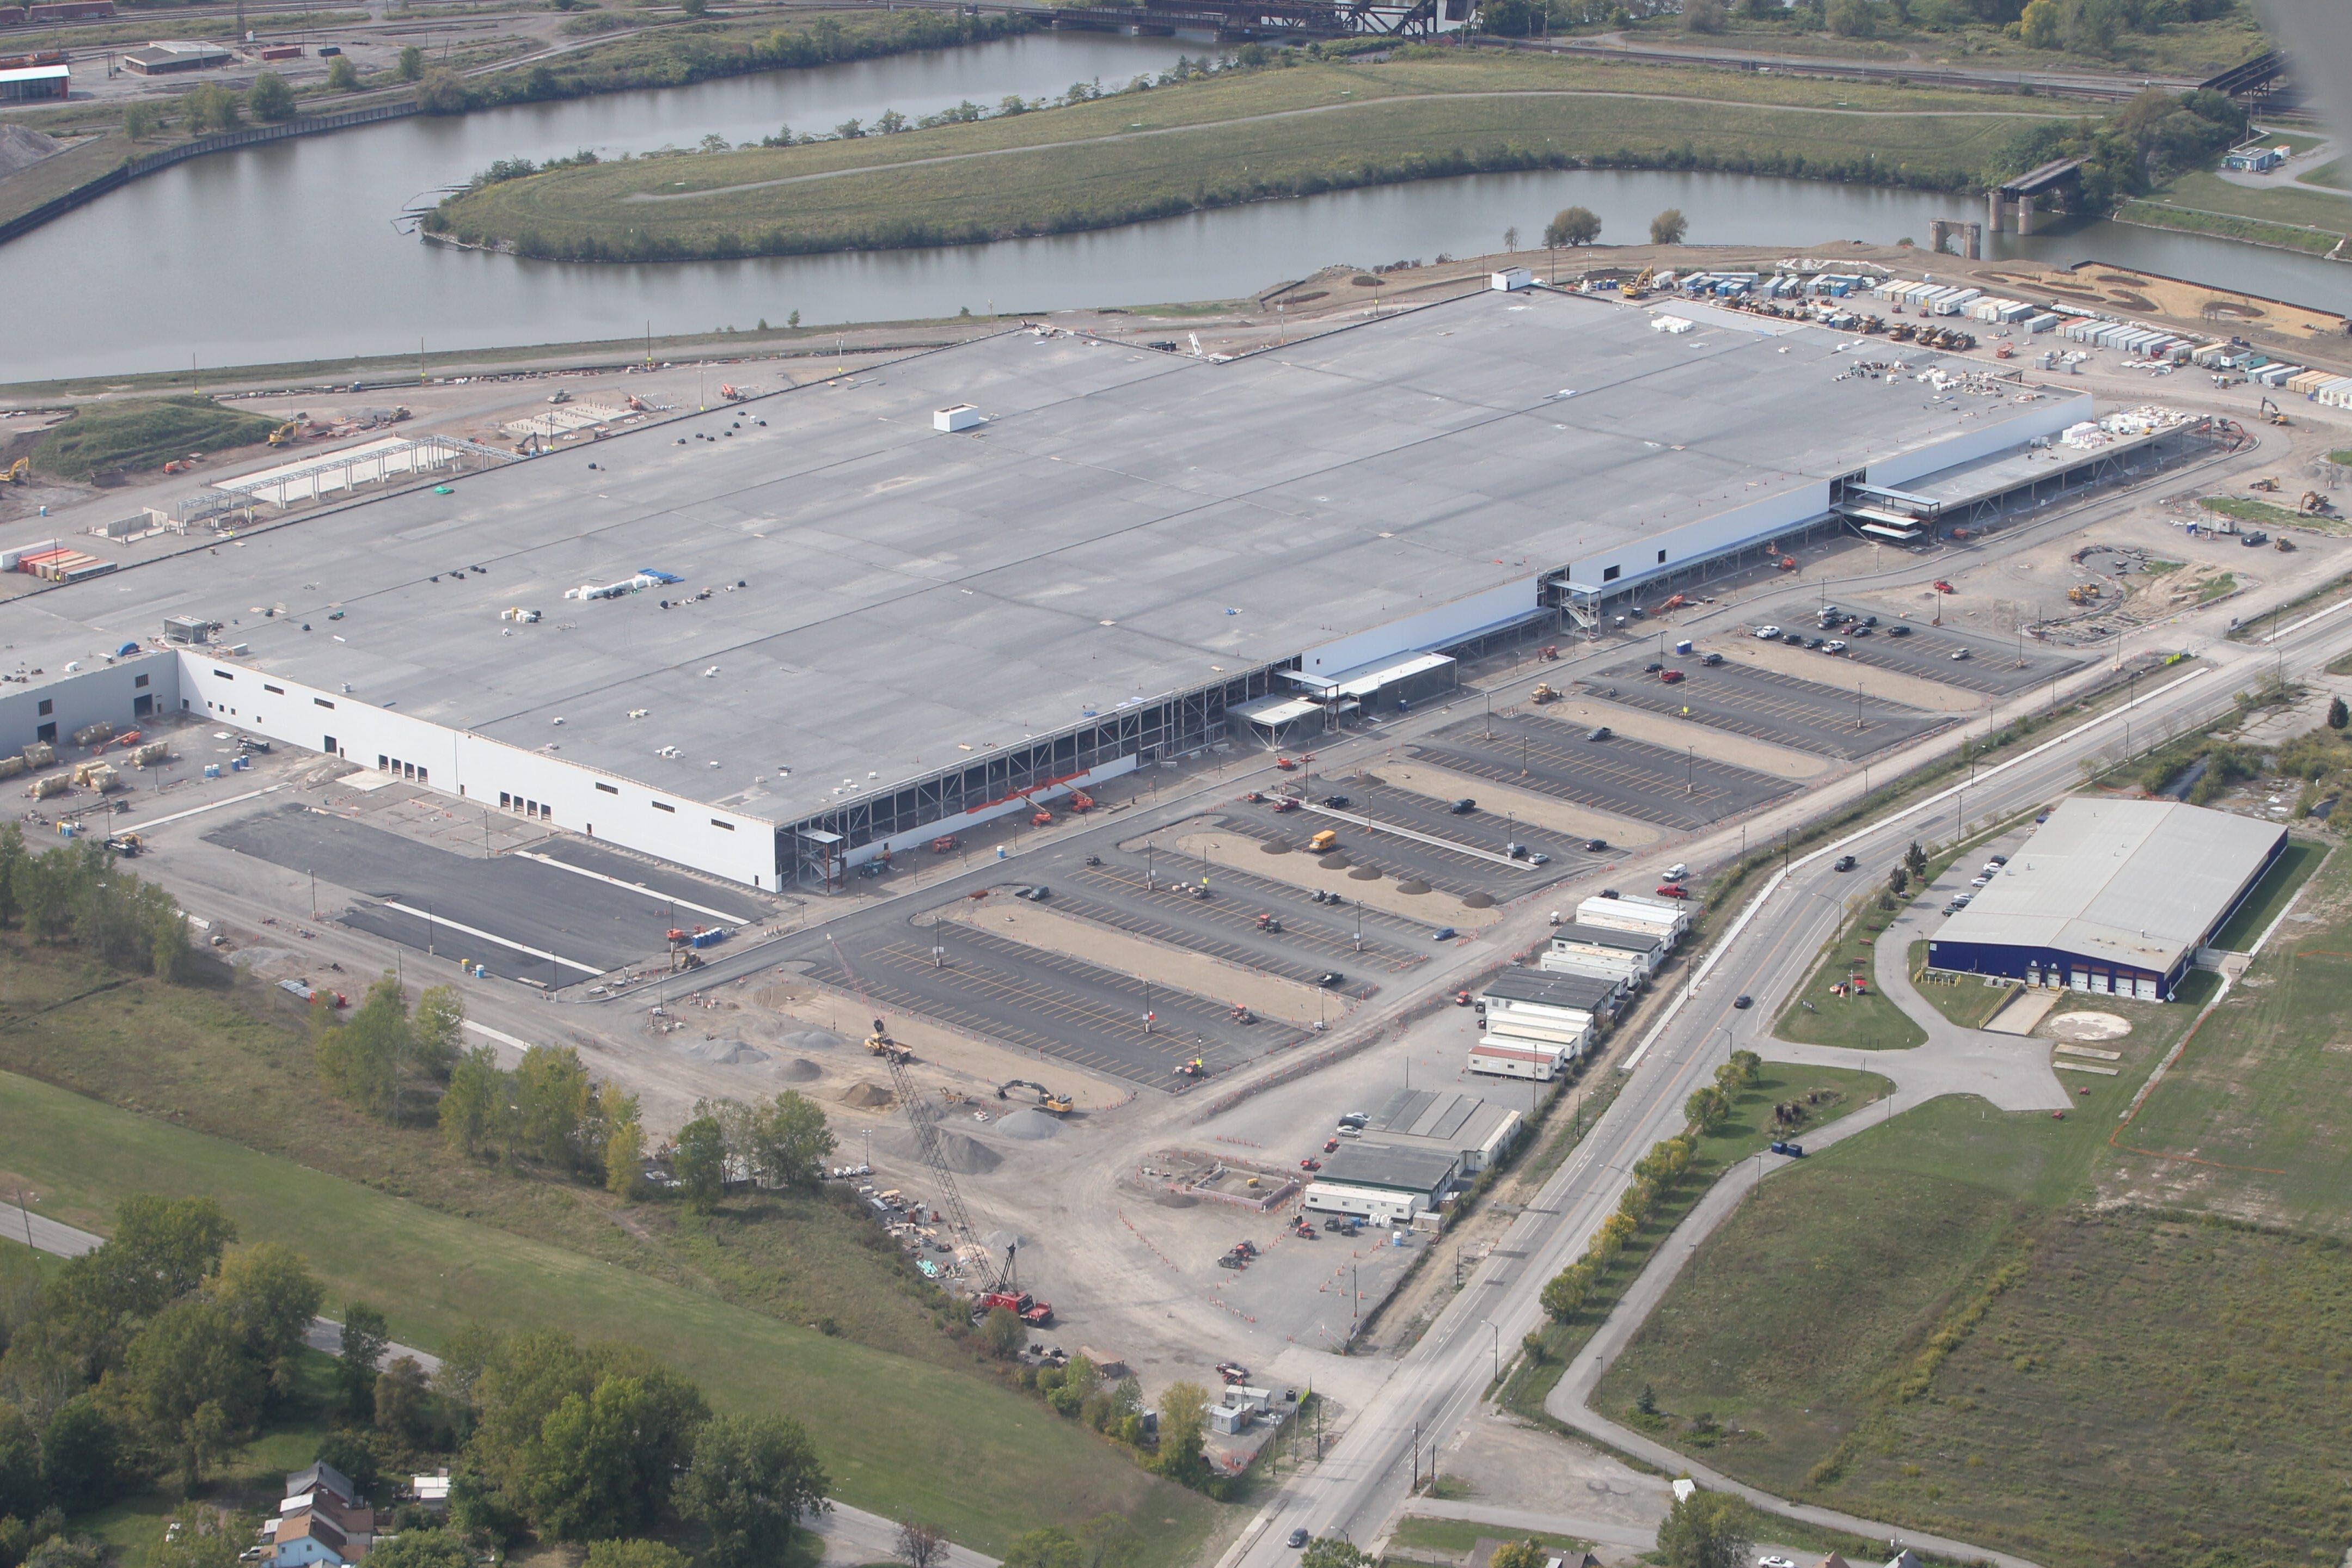 The factory being built for SolarCity along South Park Avenue near the Buffalo River in South Buffalo will be the largest solar panel factory in North America. (John Hickey/Buffalo News)